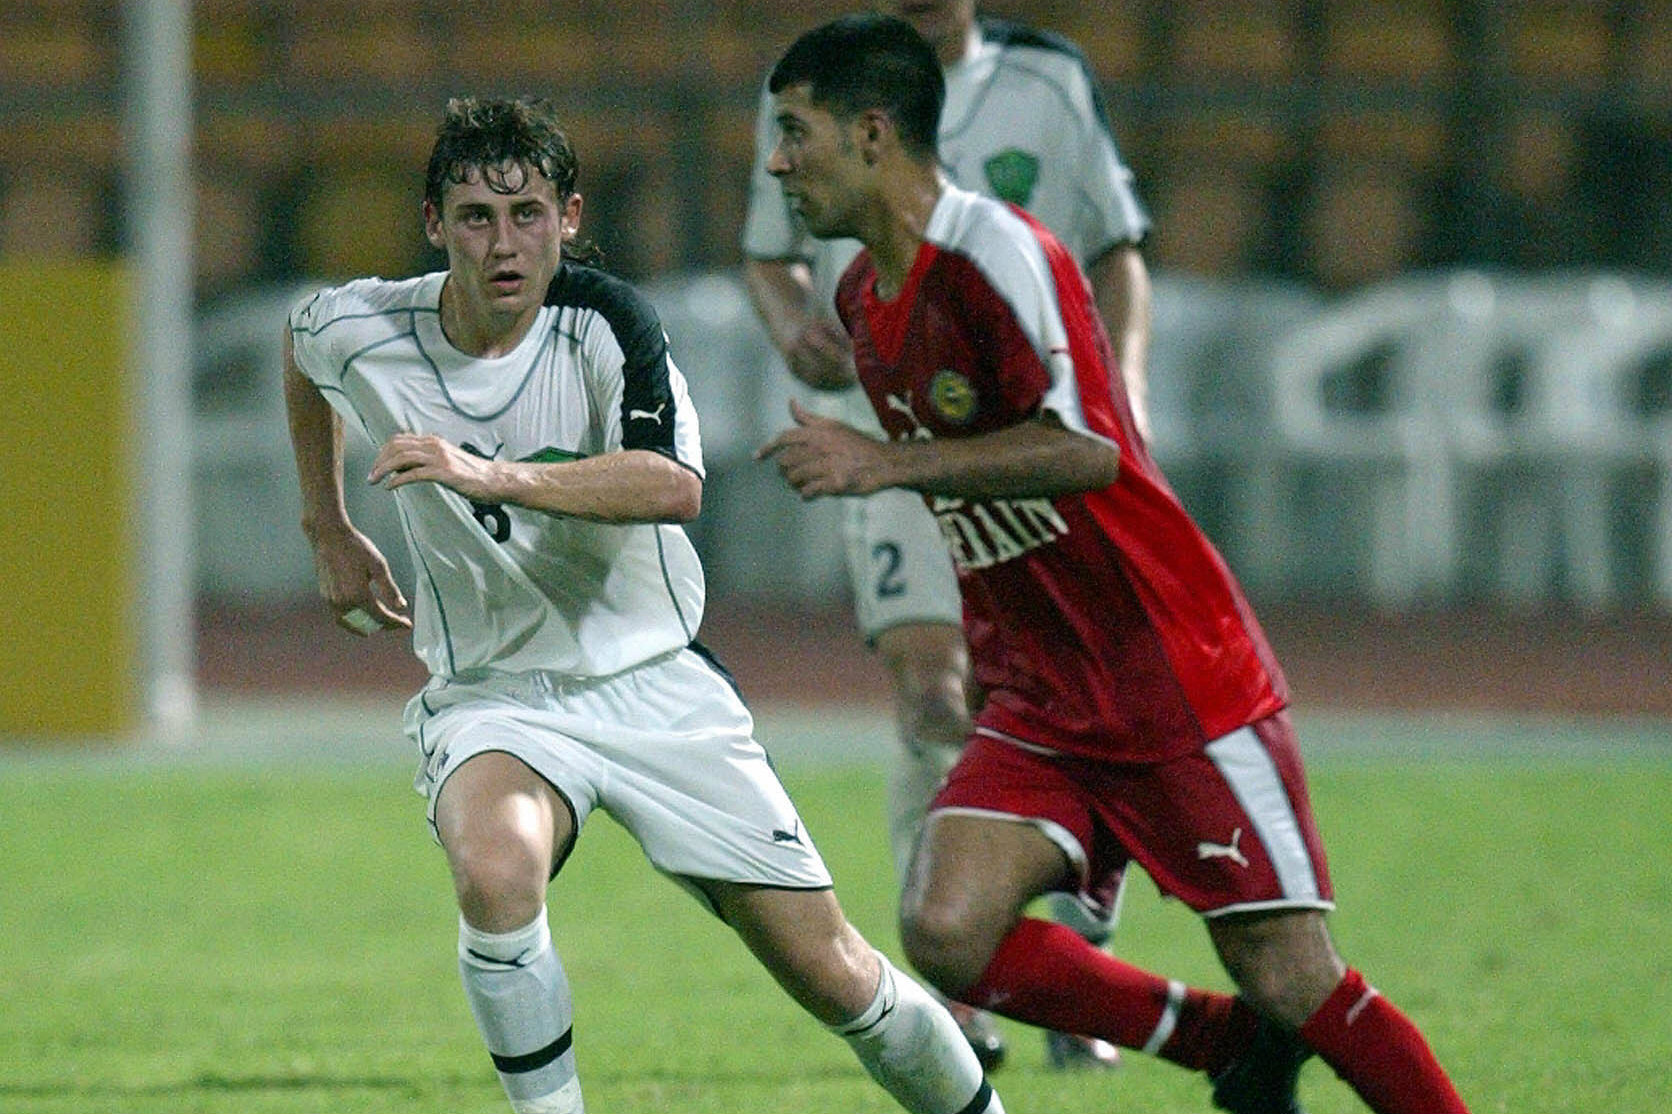 There was controversy in the tie between Uzbekistan and Bahrain in 2005.